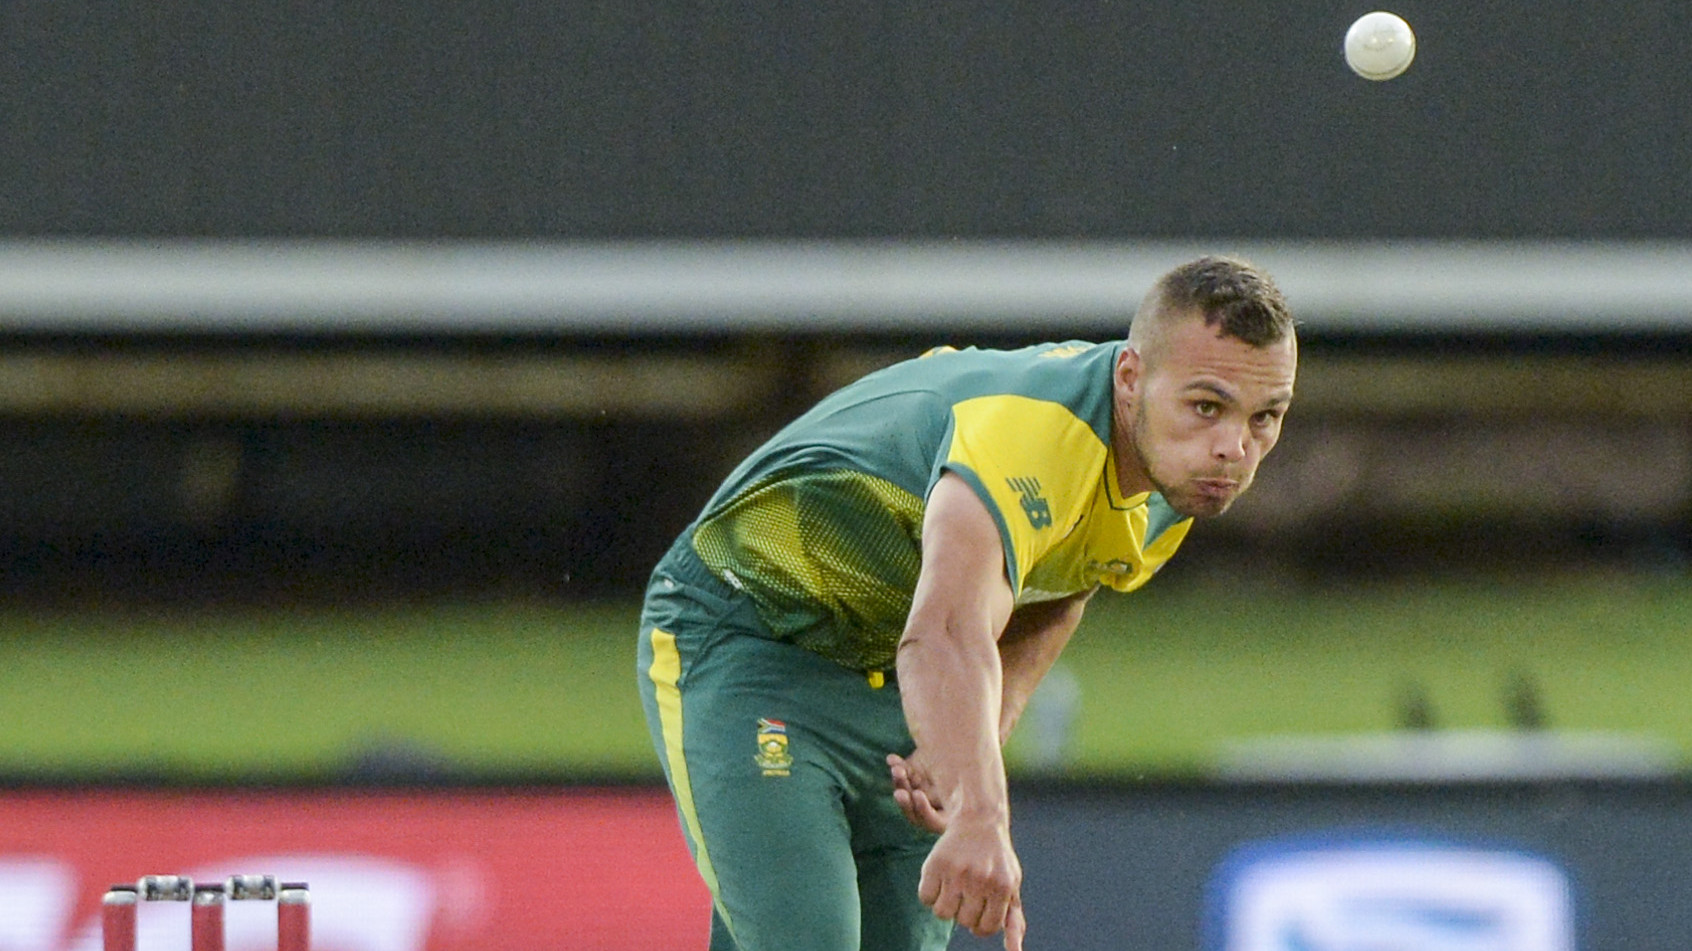 Quadrangular Series 2018: My long-term dream is to be successful playing for South Africa, says Dane Paterson